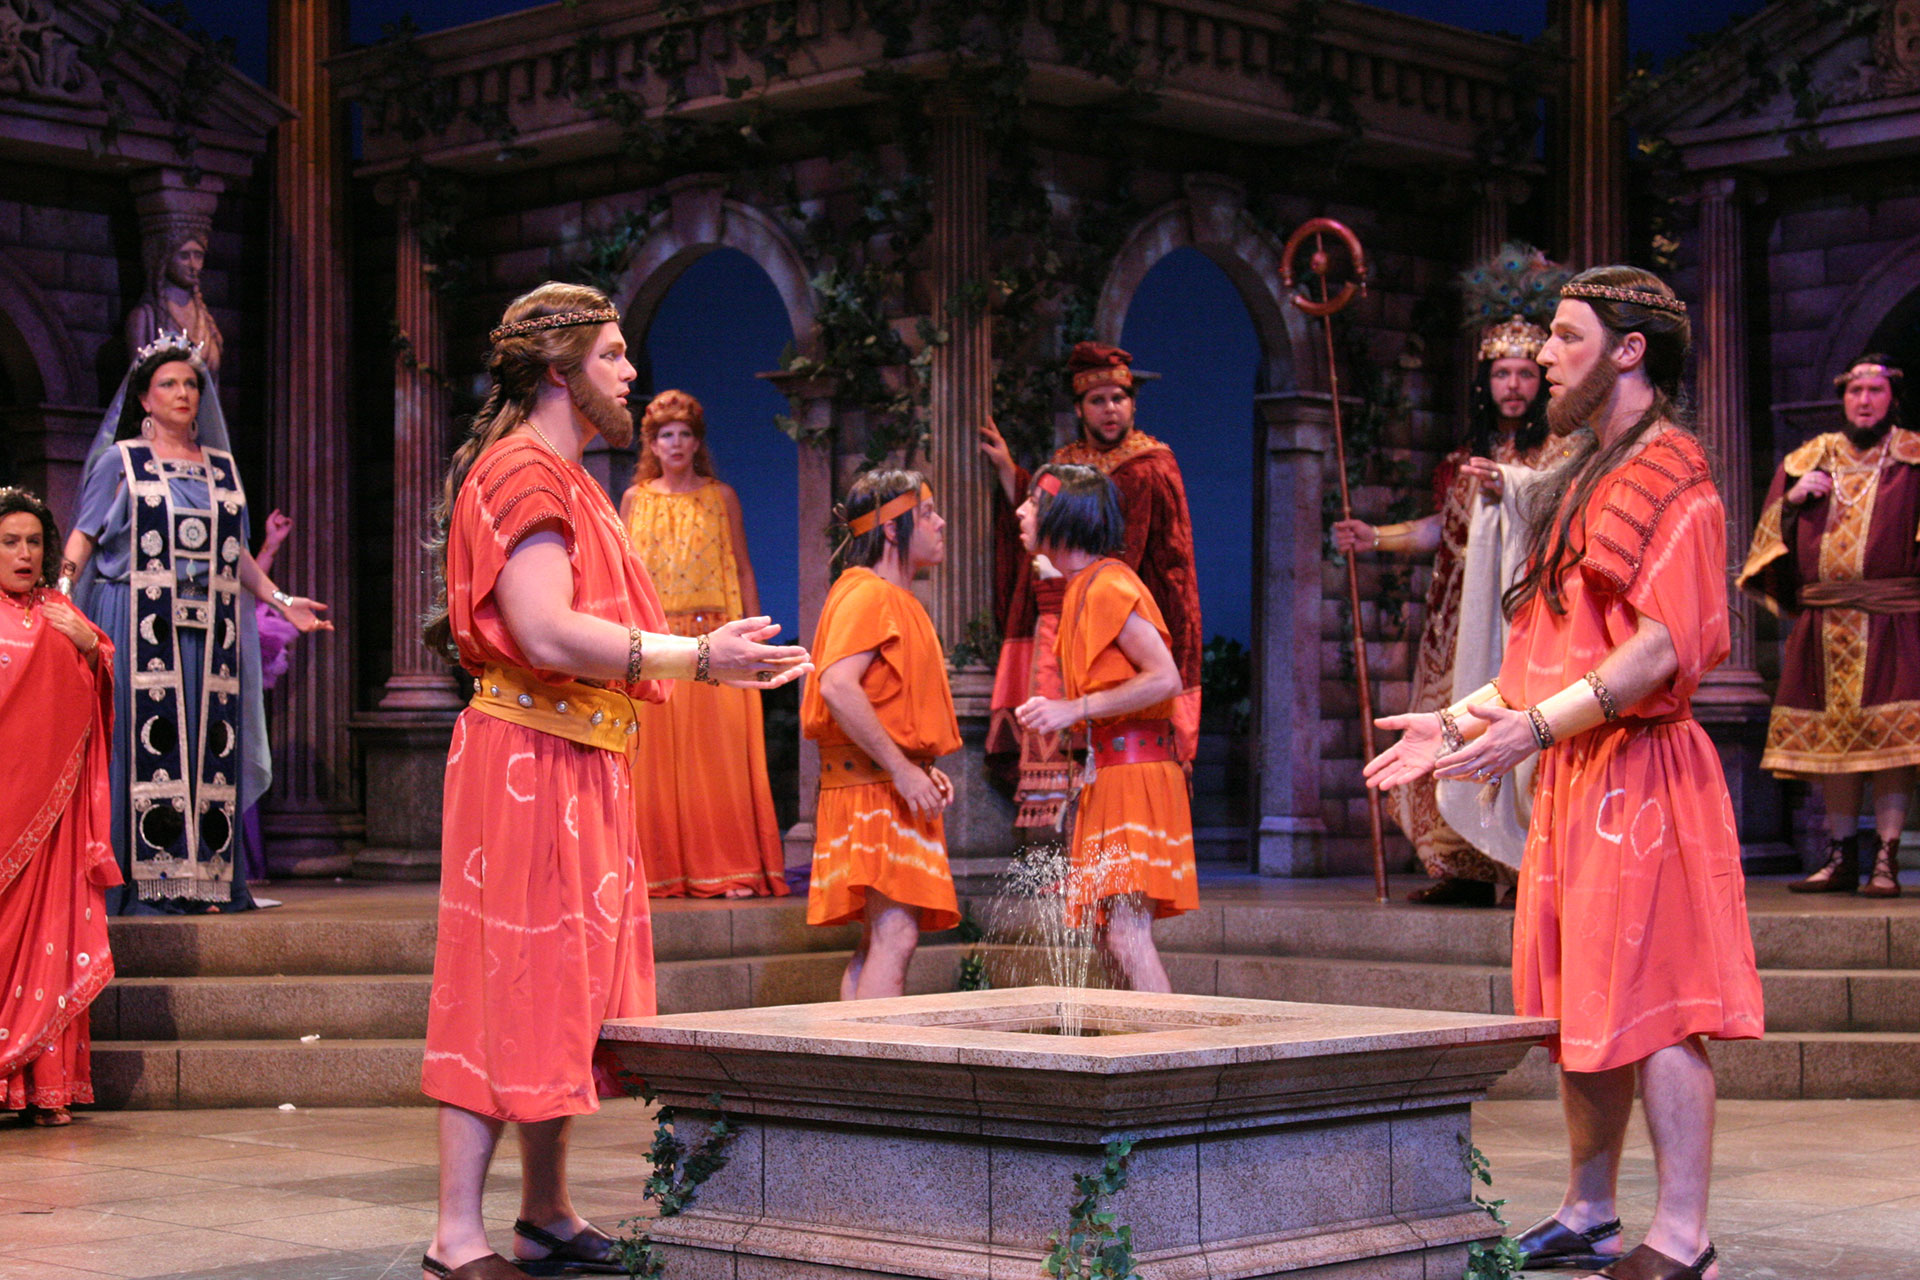 With the cast of THE COMEDY OF ERRORS at Orlando Shakespeare Theatre. Photo by Rob Jones.